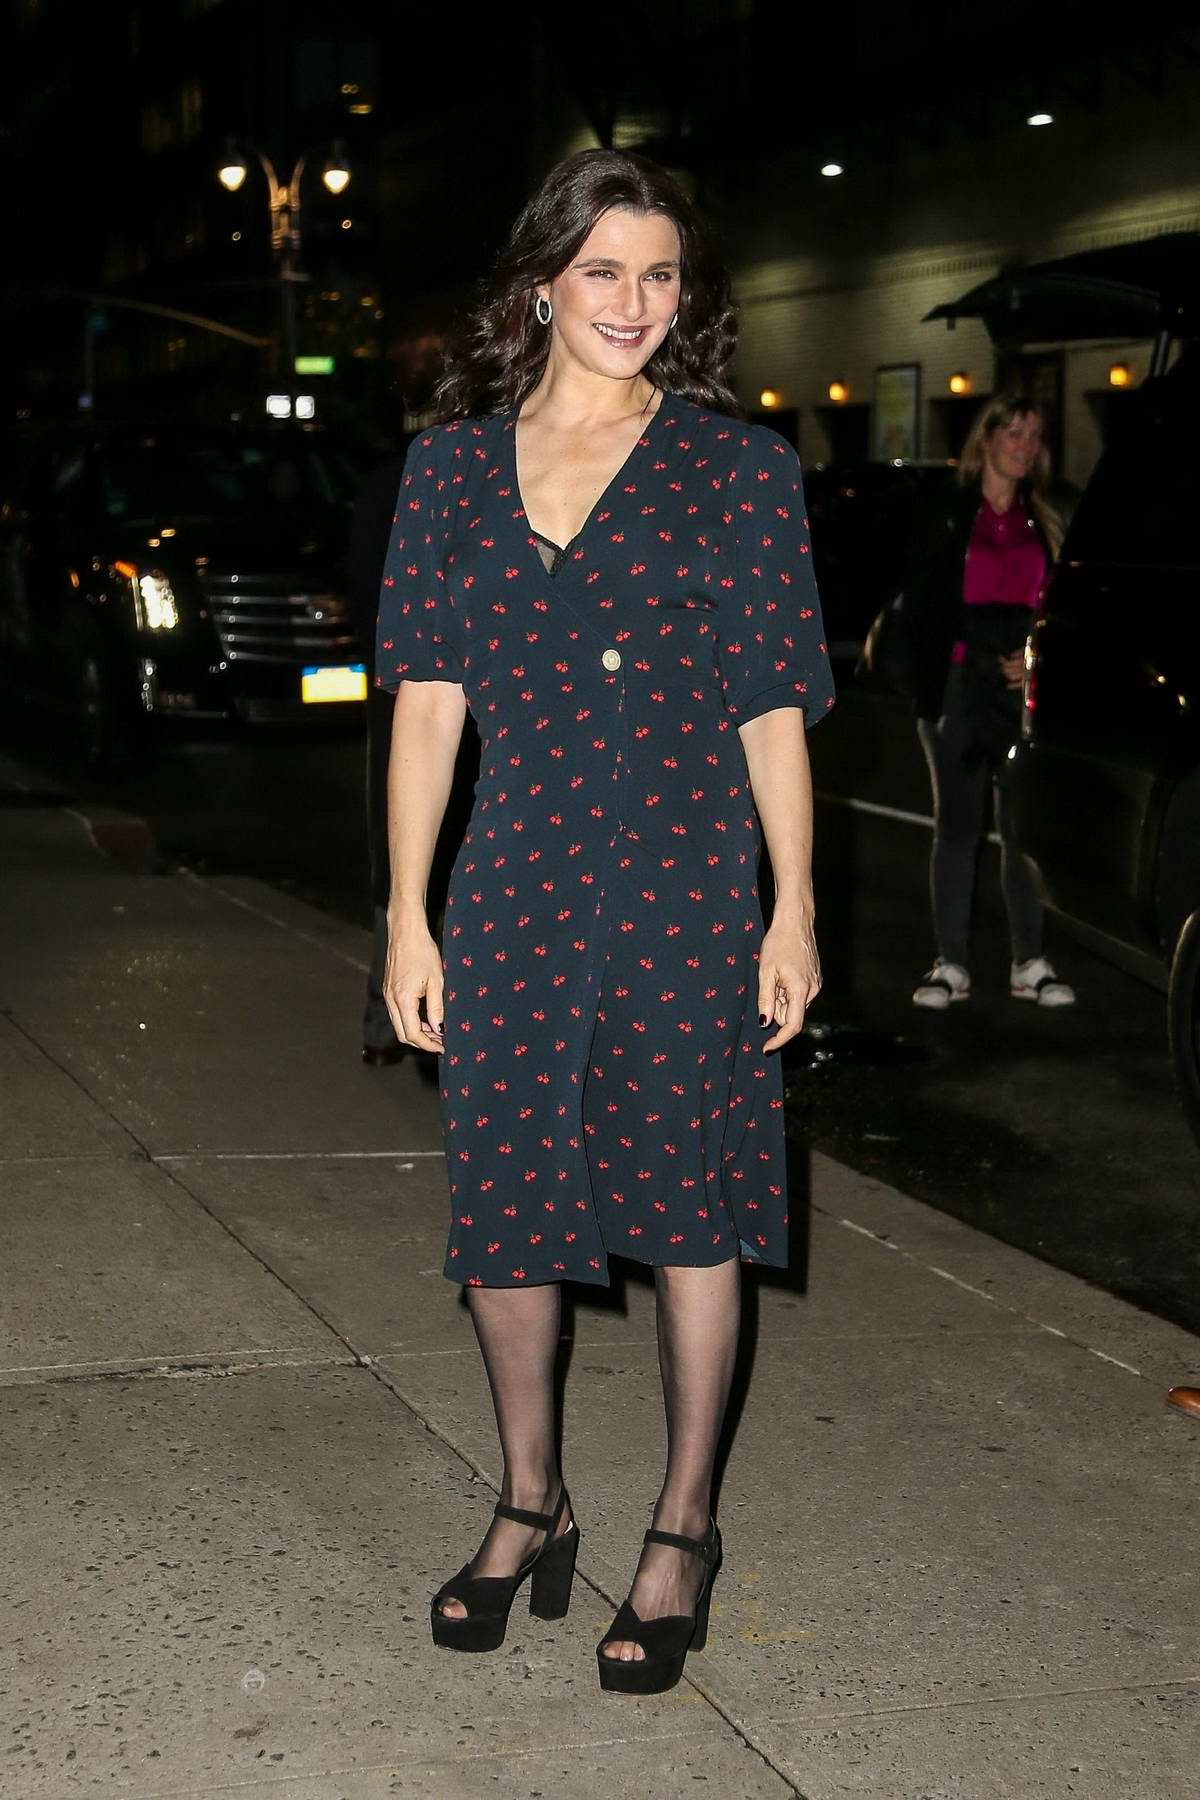 Rachel Weisz wears a red cherry-print dress as she arrives for her appearance on 'The Late Show With Stephen Colbert' in New York City